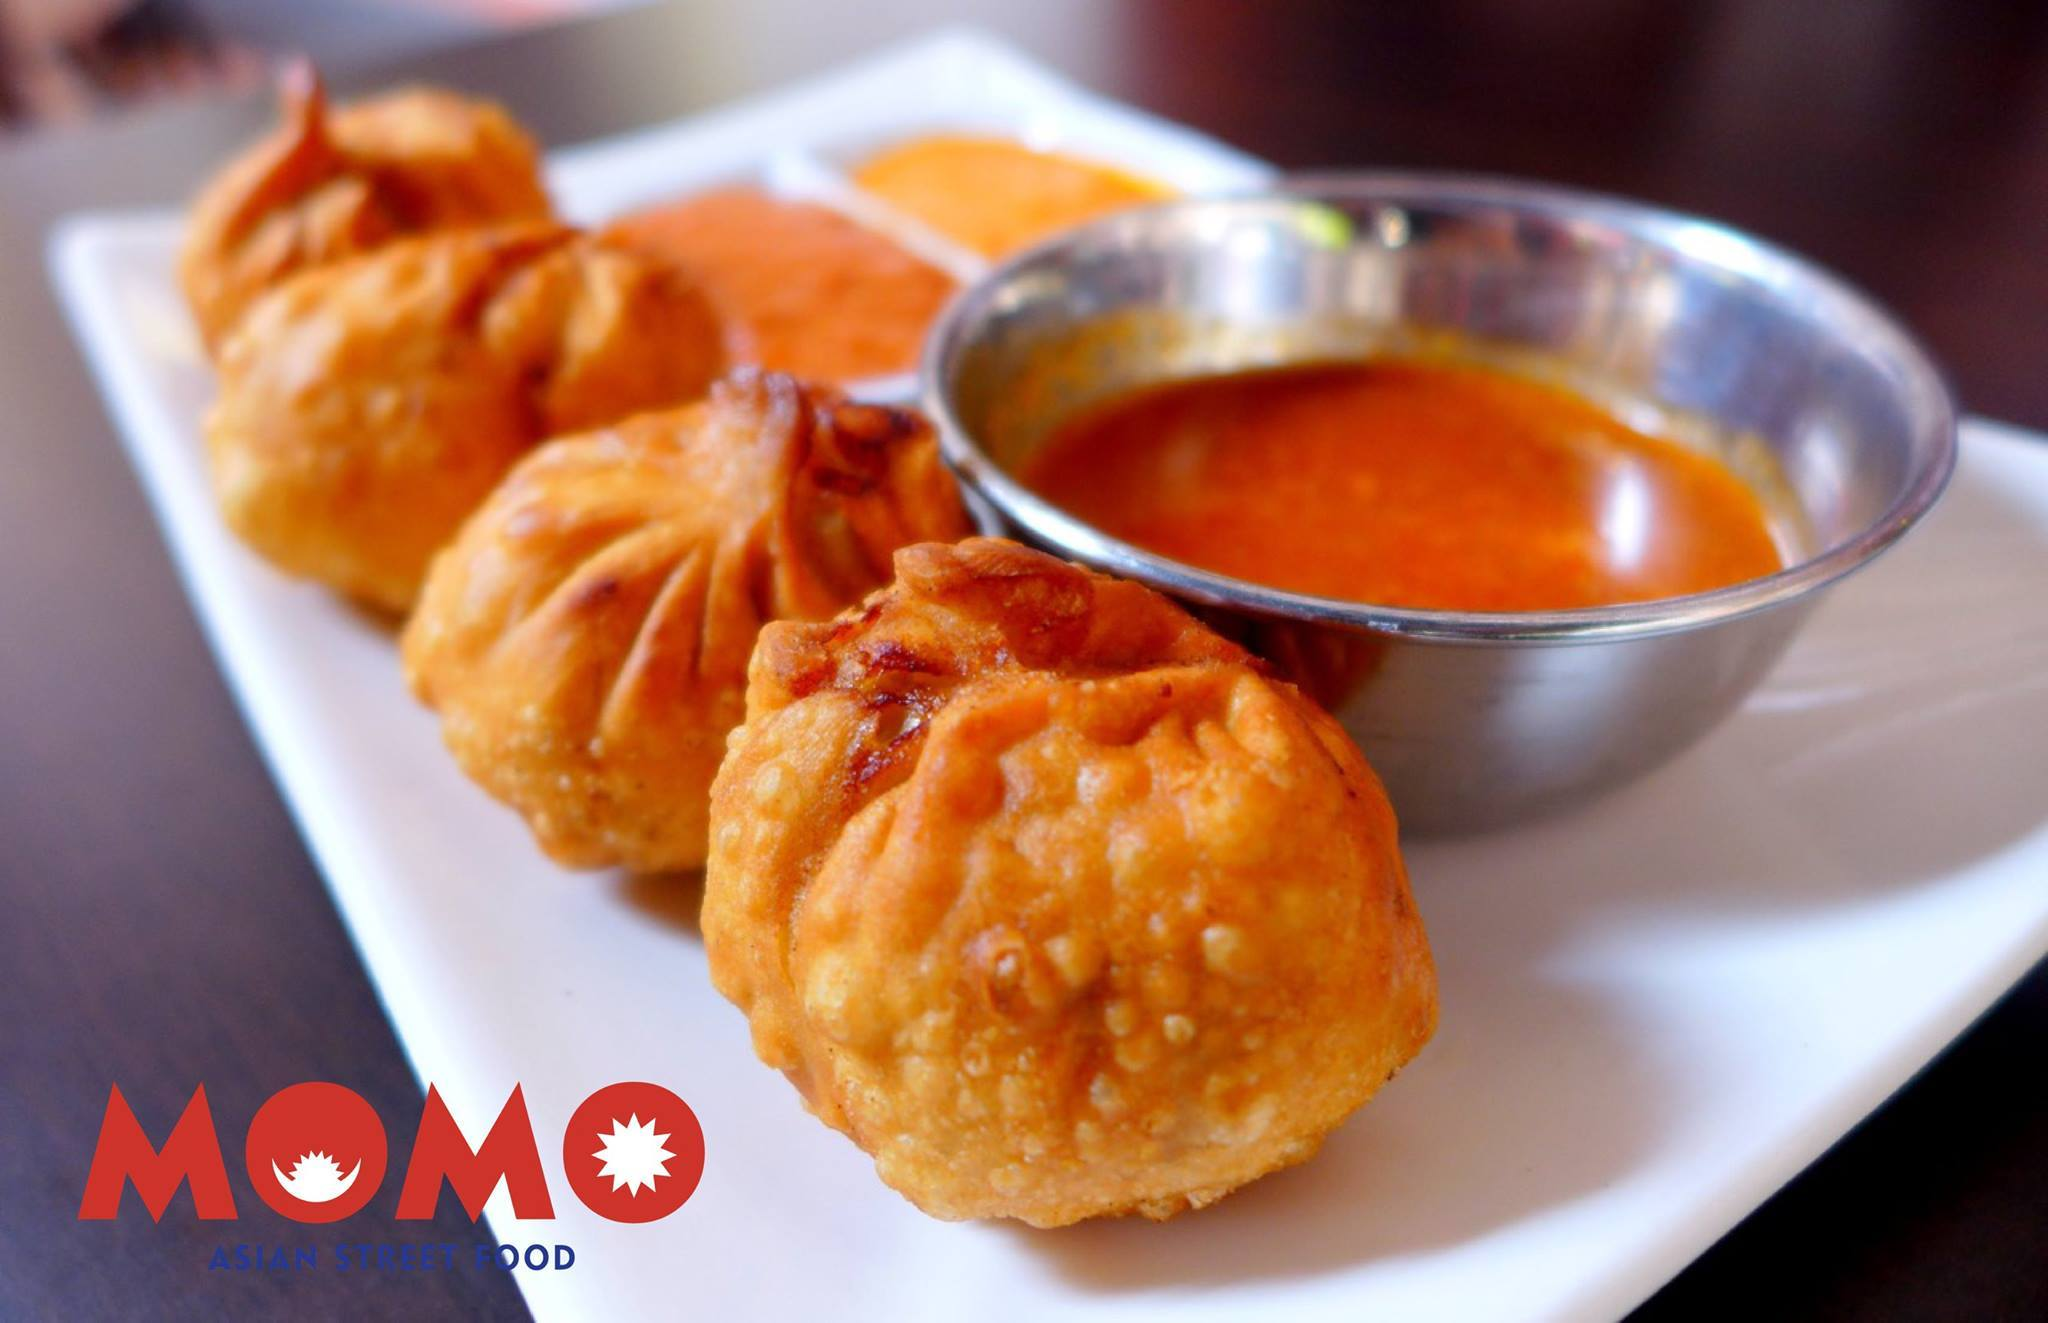 Fried momo